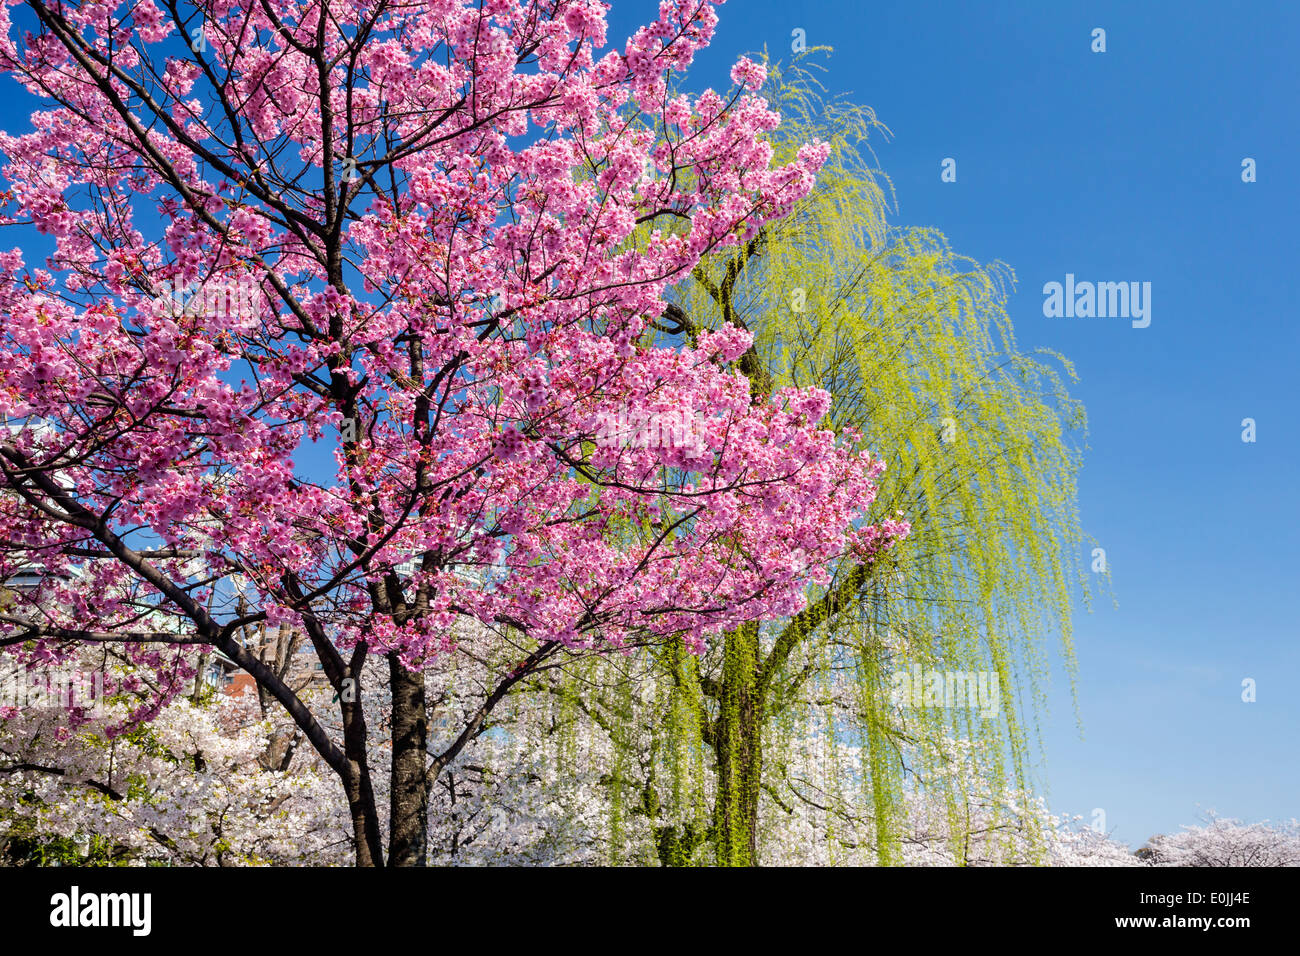 Willow tree flower stock photos willow tree flower stock images cherry blossoms and willow tree stock image mightylinksfo